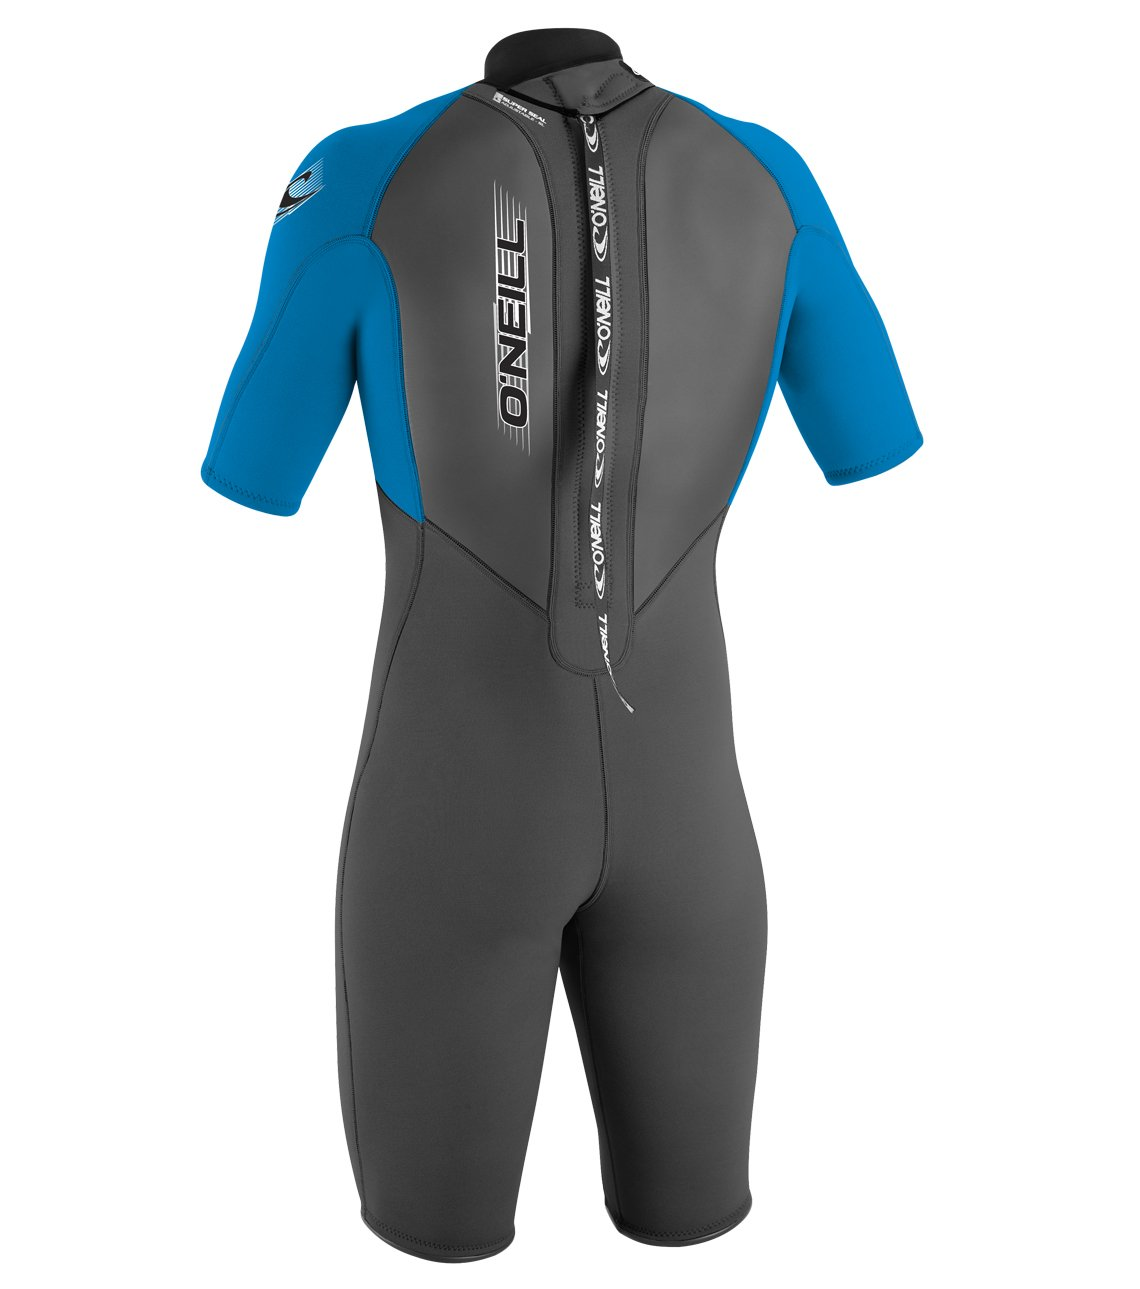 O'Neill Youth Reactor 2mm Back Zip Spring Wetsuit, Graphite/Brite Blue/Brite Blue, 6 by O'Neill Wetsuits (Image #2)